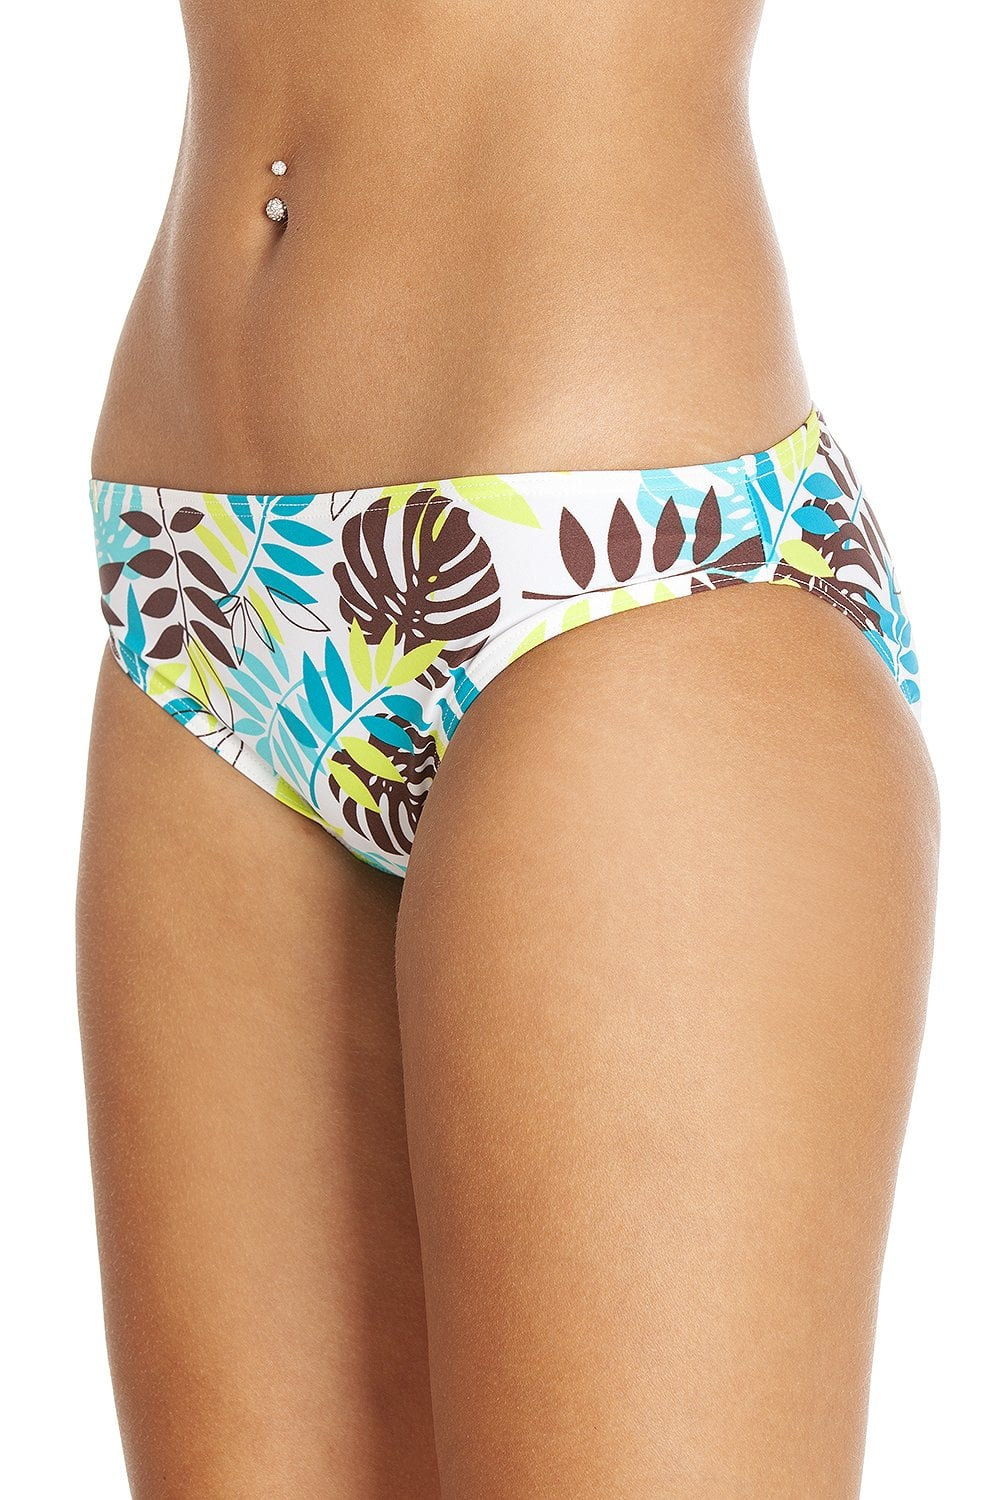 34036fc857e3ec Camille Brown Green & Blue Leaf Print White Bikini Bottoms